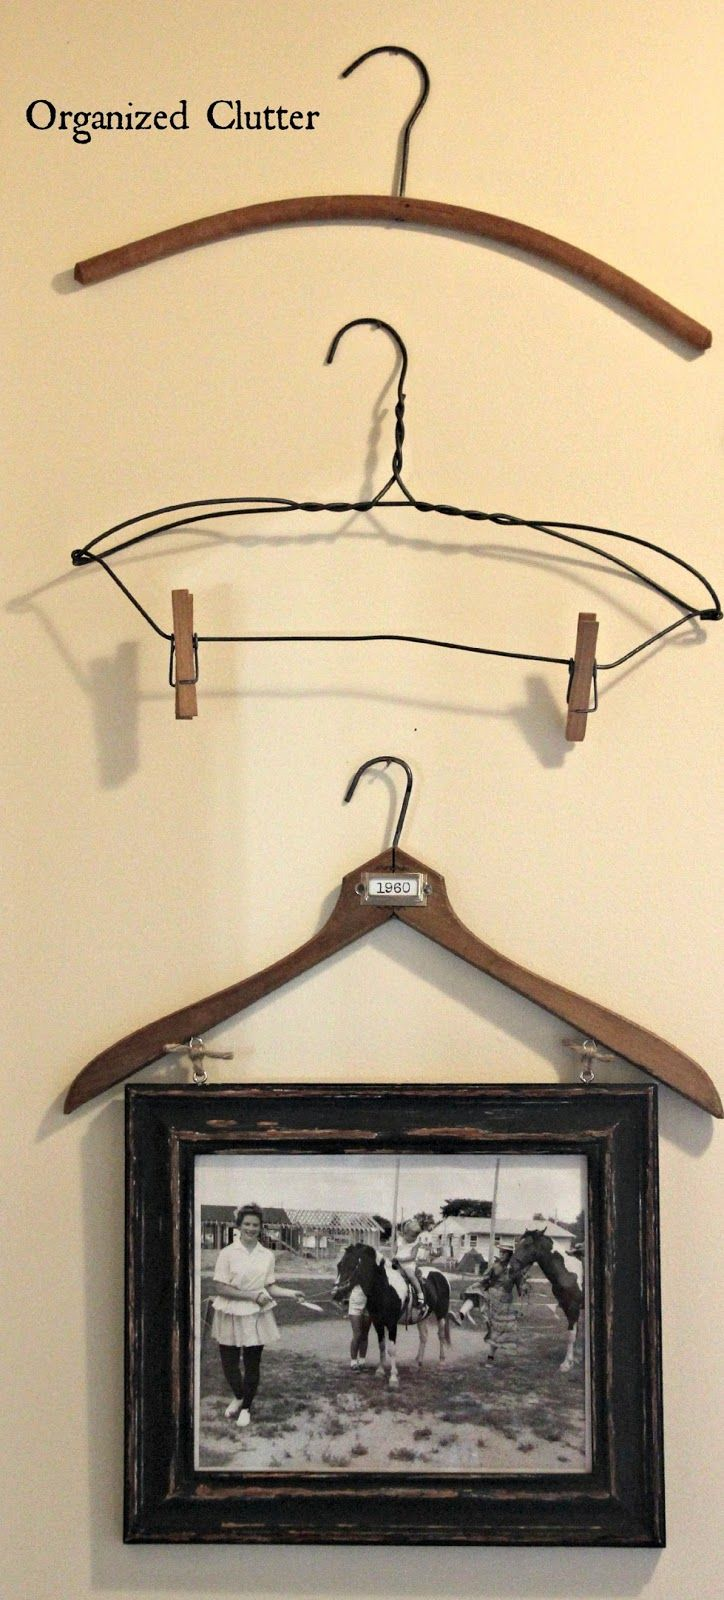 Vintage Clothes Hangers As Wall Decor www.organizedclutter.net ...